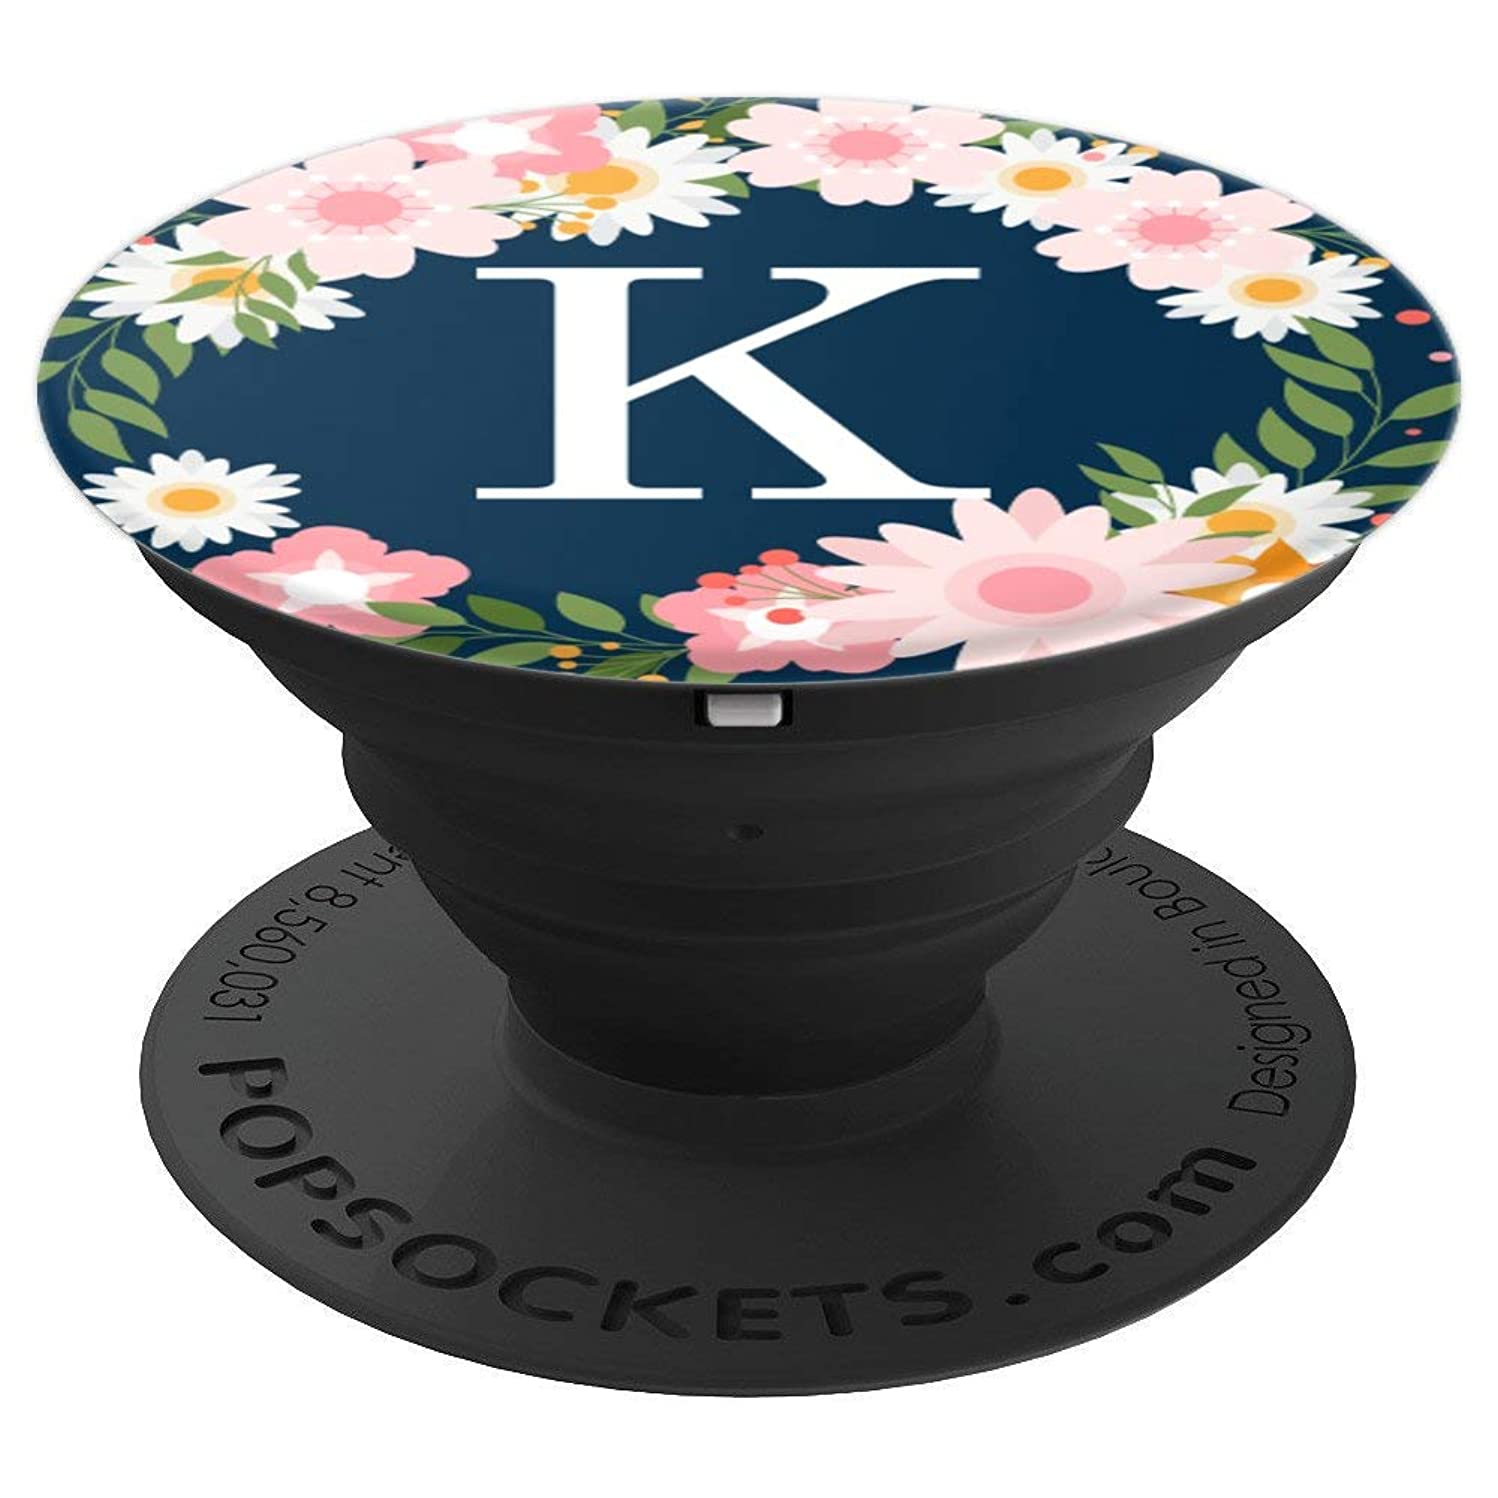 Initial Letter K Pink White Navy Blue Flower Wreath Monogram - PopSockets Grip and Stand for Phones and Tablets